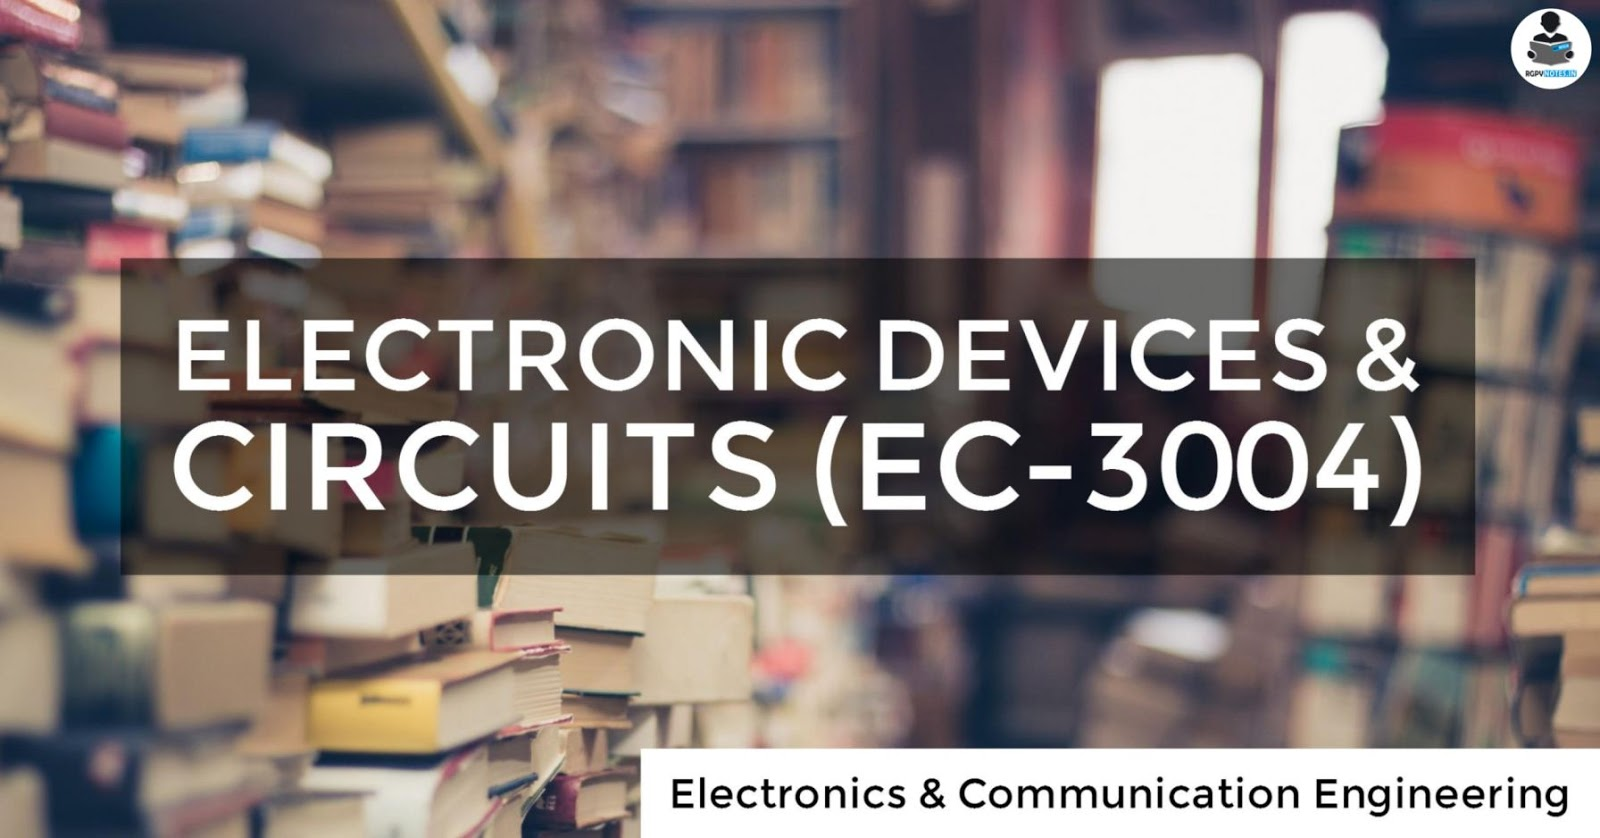 EC3004 - Electronic Devices & Circuits - RGPV notes CBGS